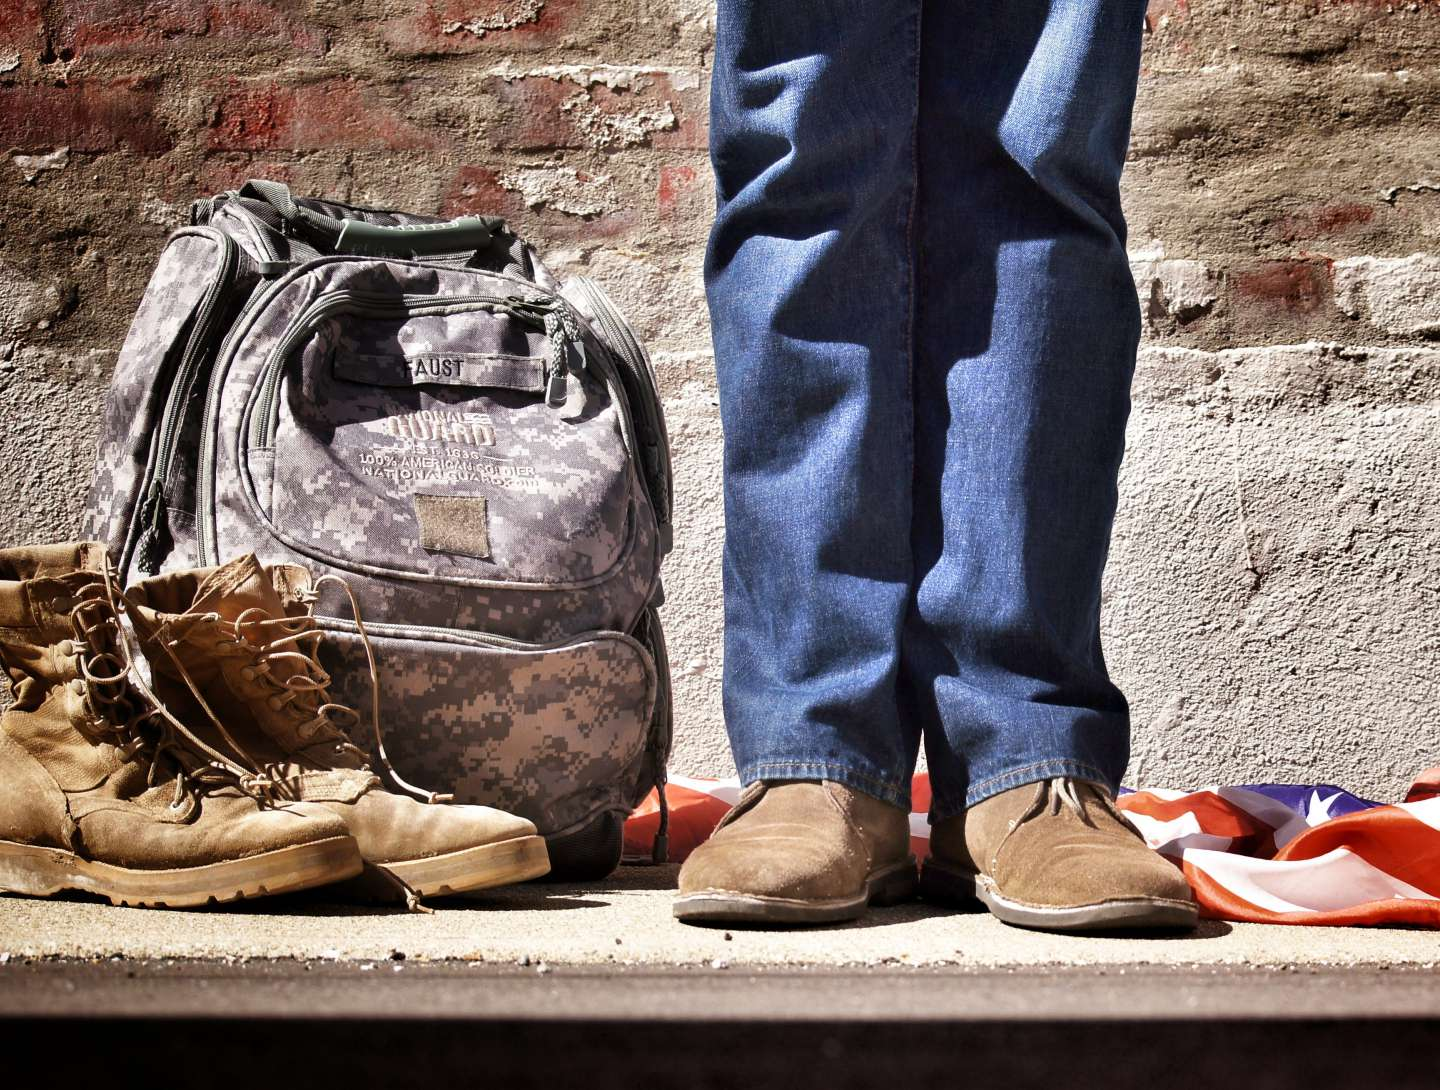 Military bag, boots, and American flag